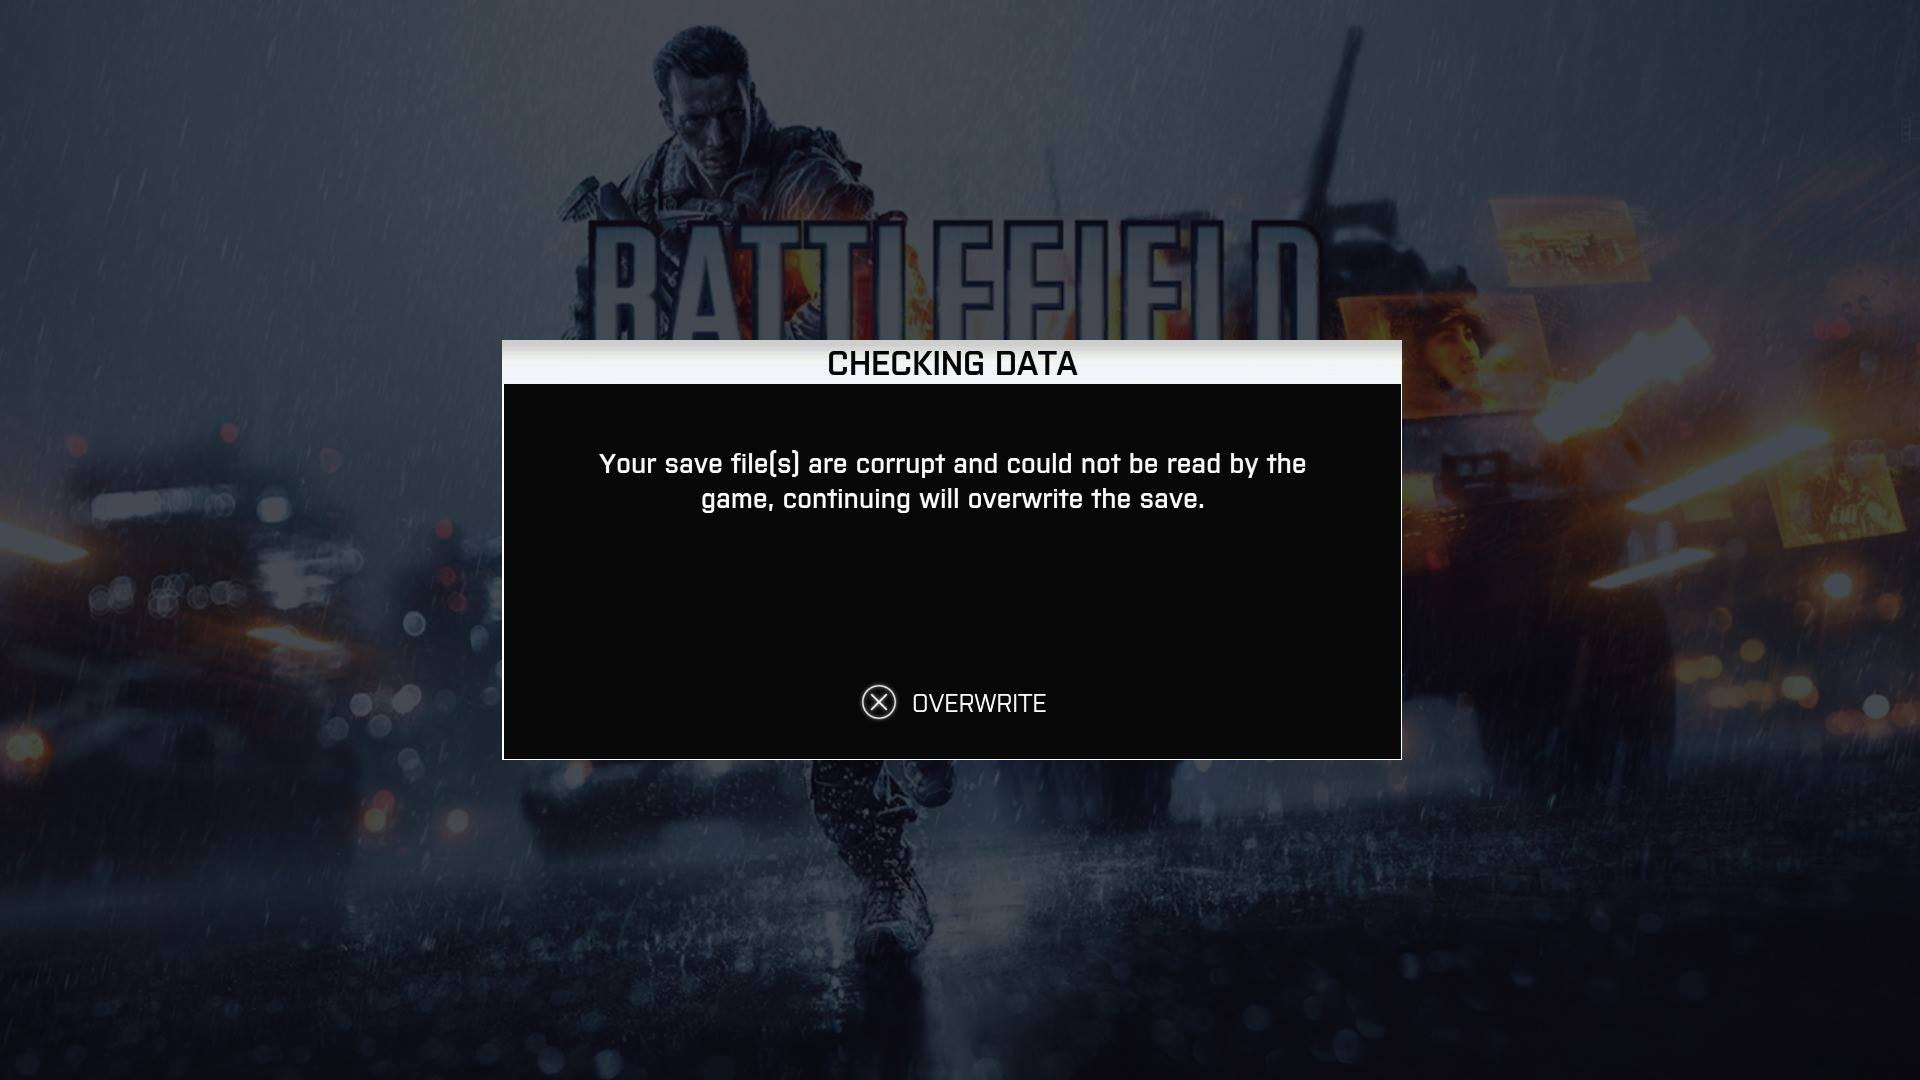 Oh, the fun of playing Battlefield 4...